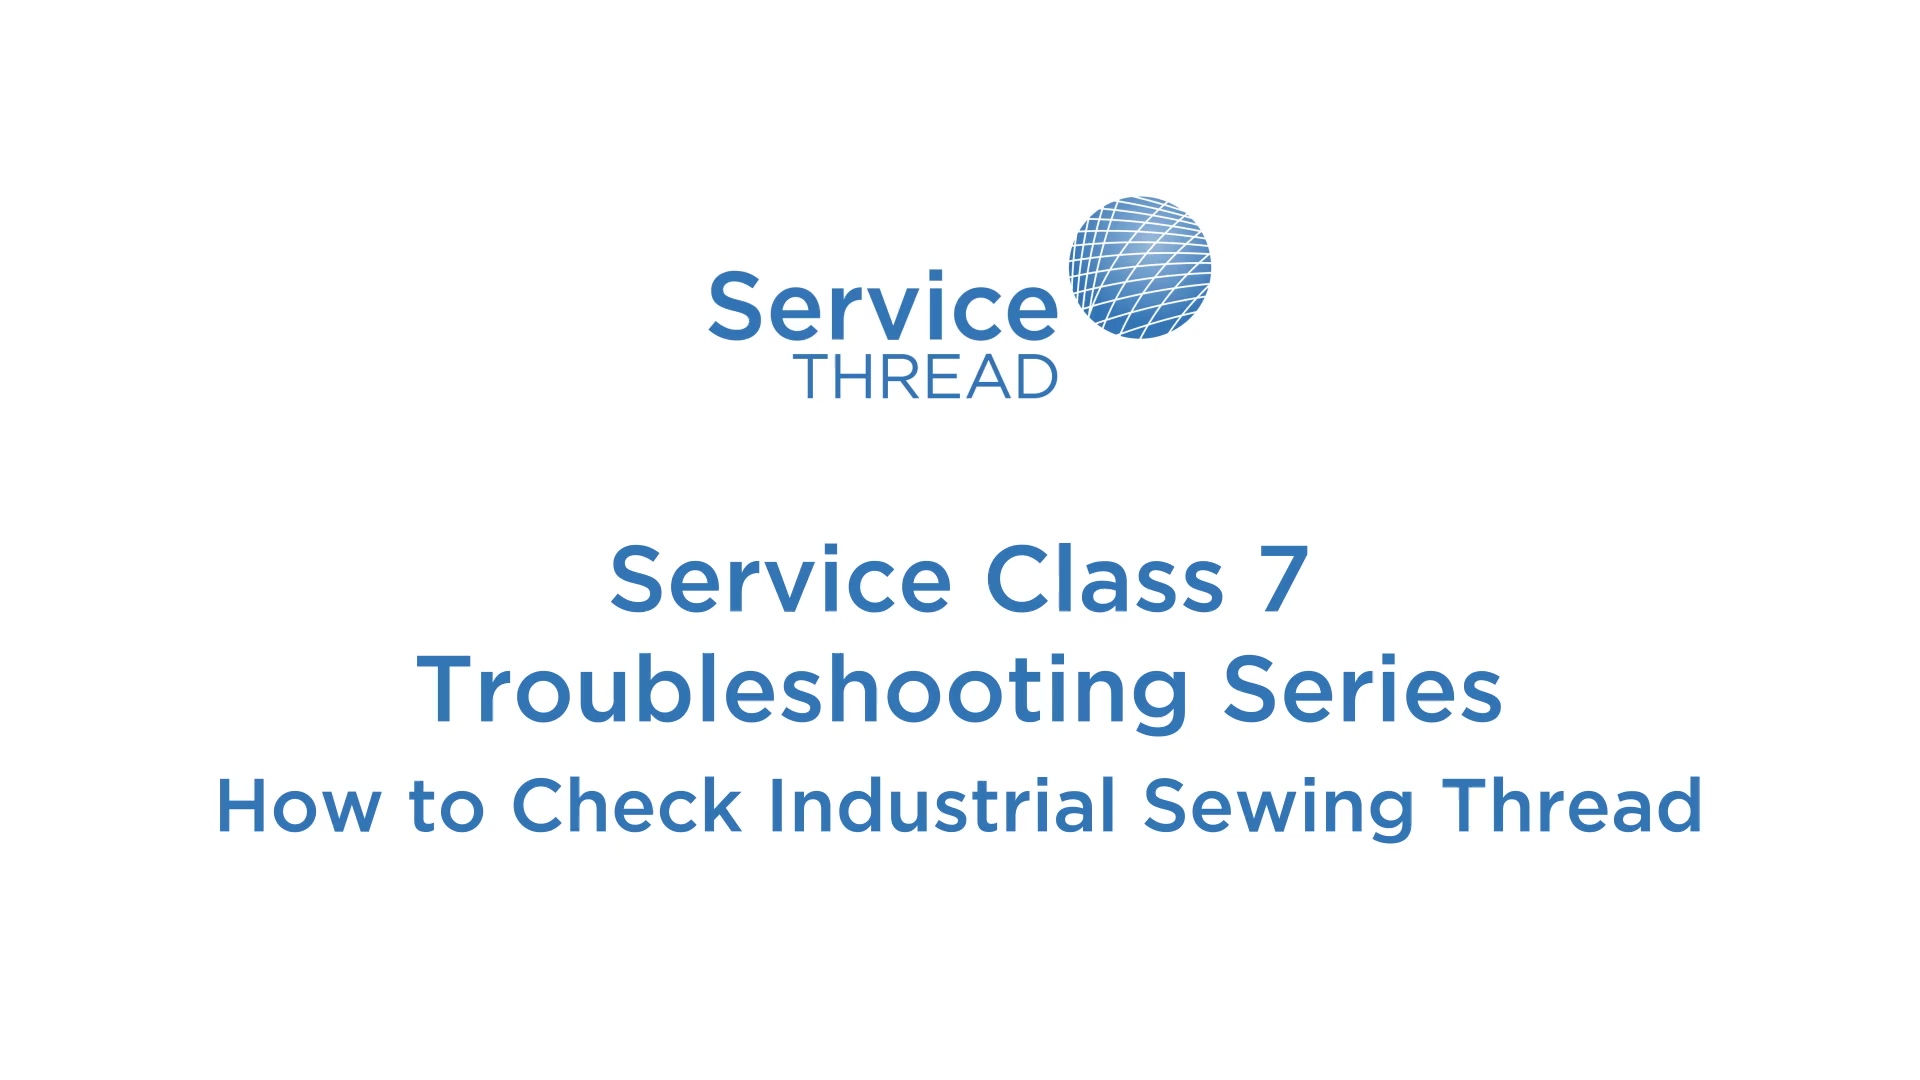 Service Therad - How to Check Industrial Sewing Thread